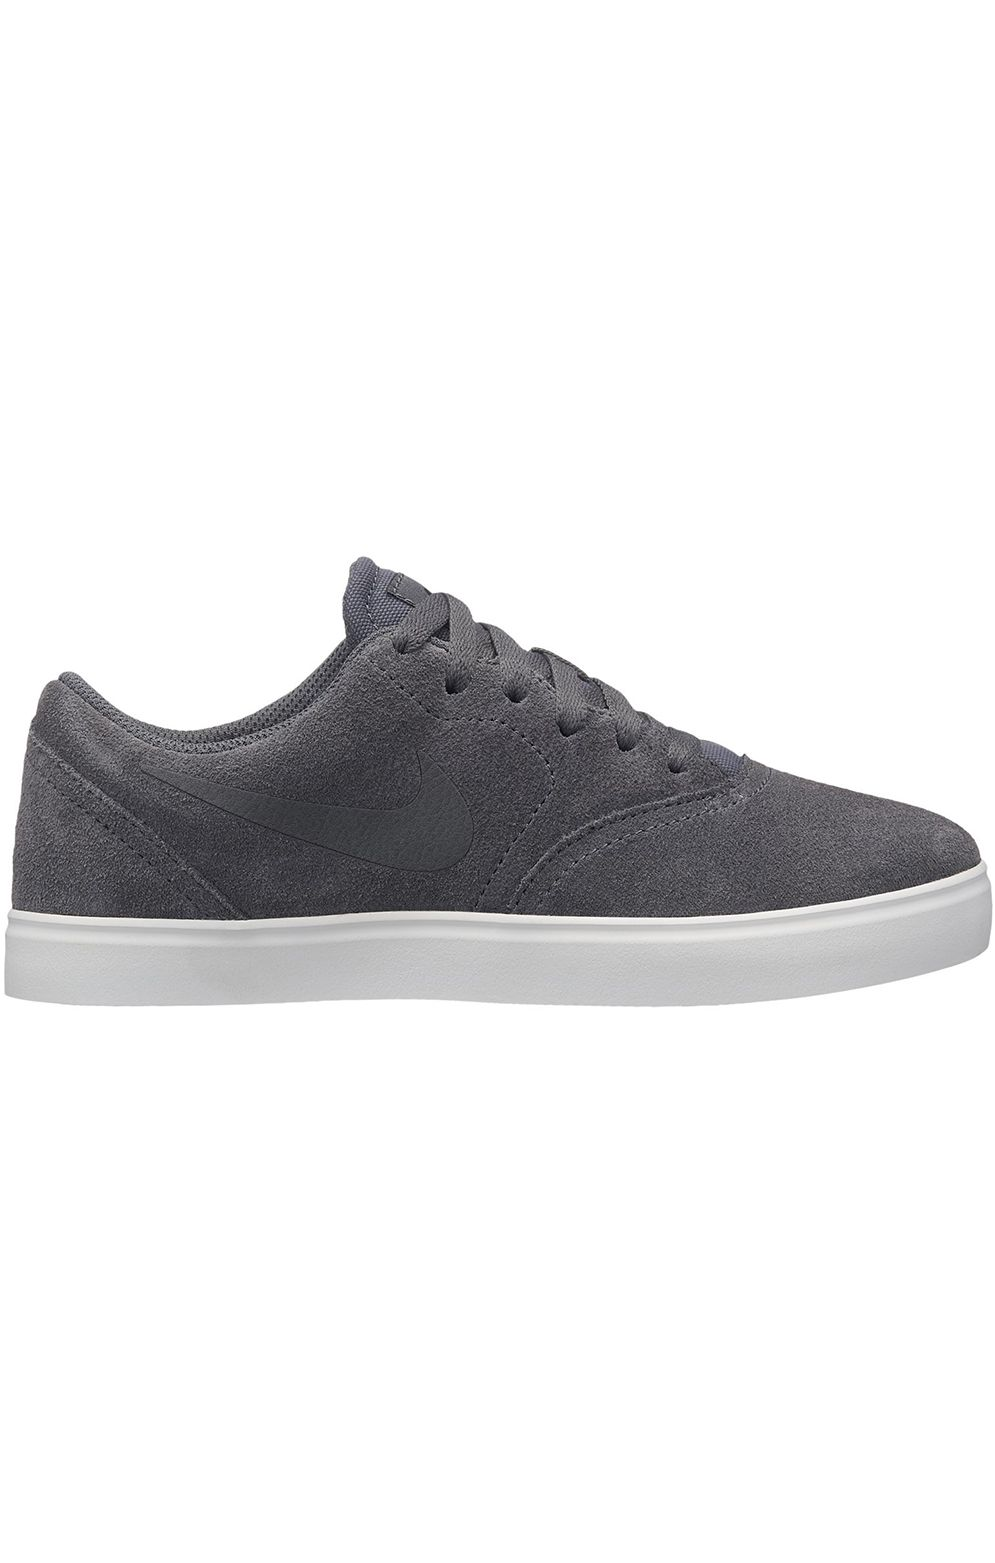 Tenis Nike Sb CHECK SUEDE (GS) Dark Grey/Dark Grey-Black-Summit White